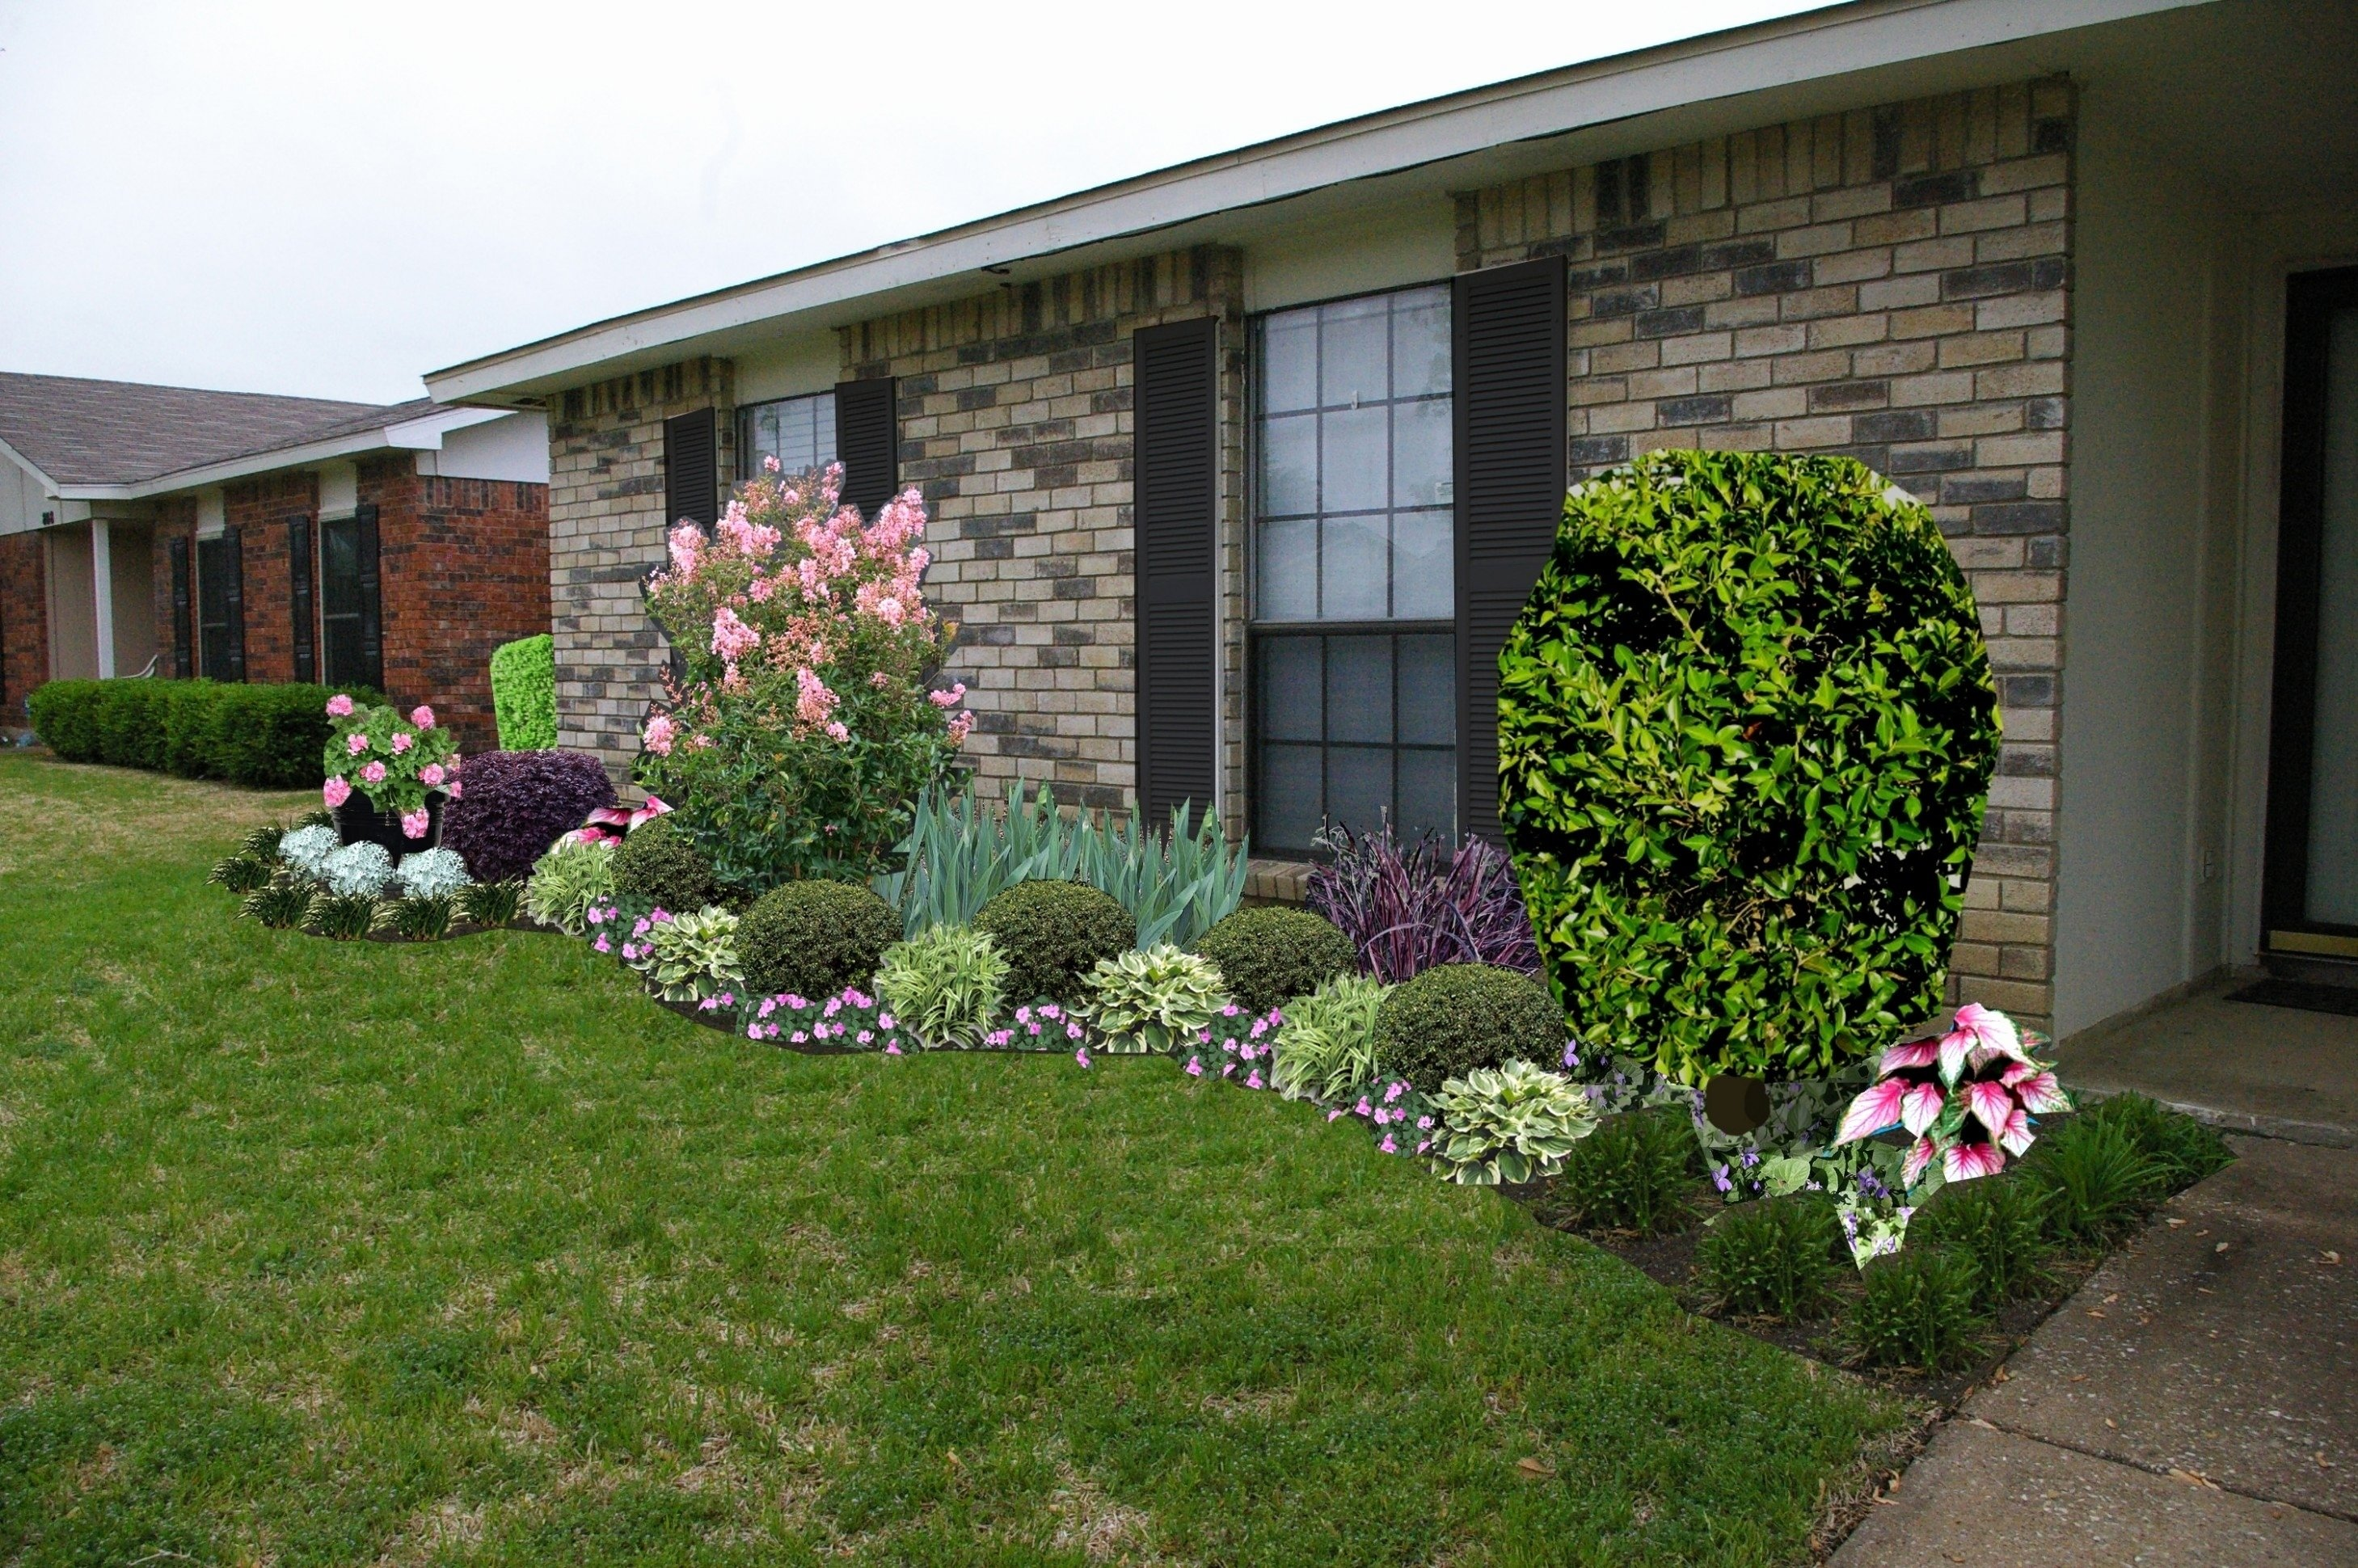 10 Nice Ideas For Front Yard Landscaping delivered front yard landscaping ideas pictures luxury garden www 2020